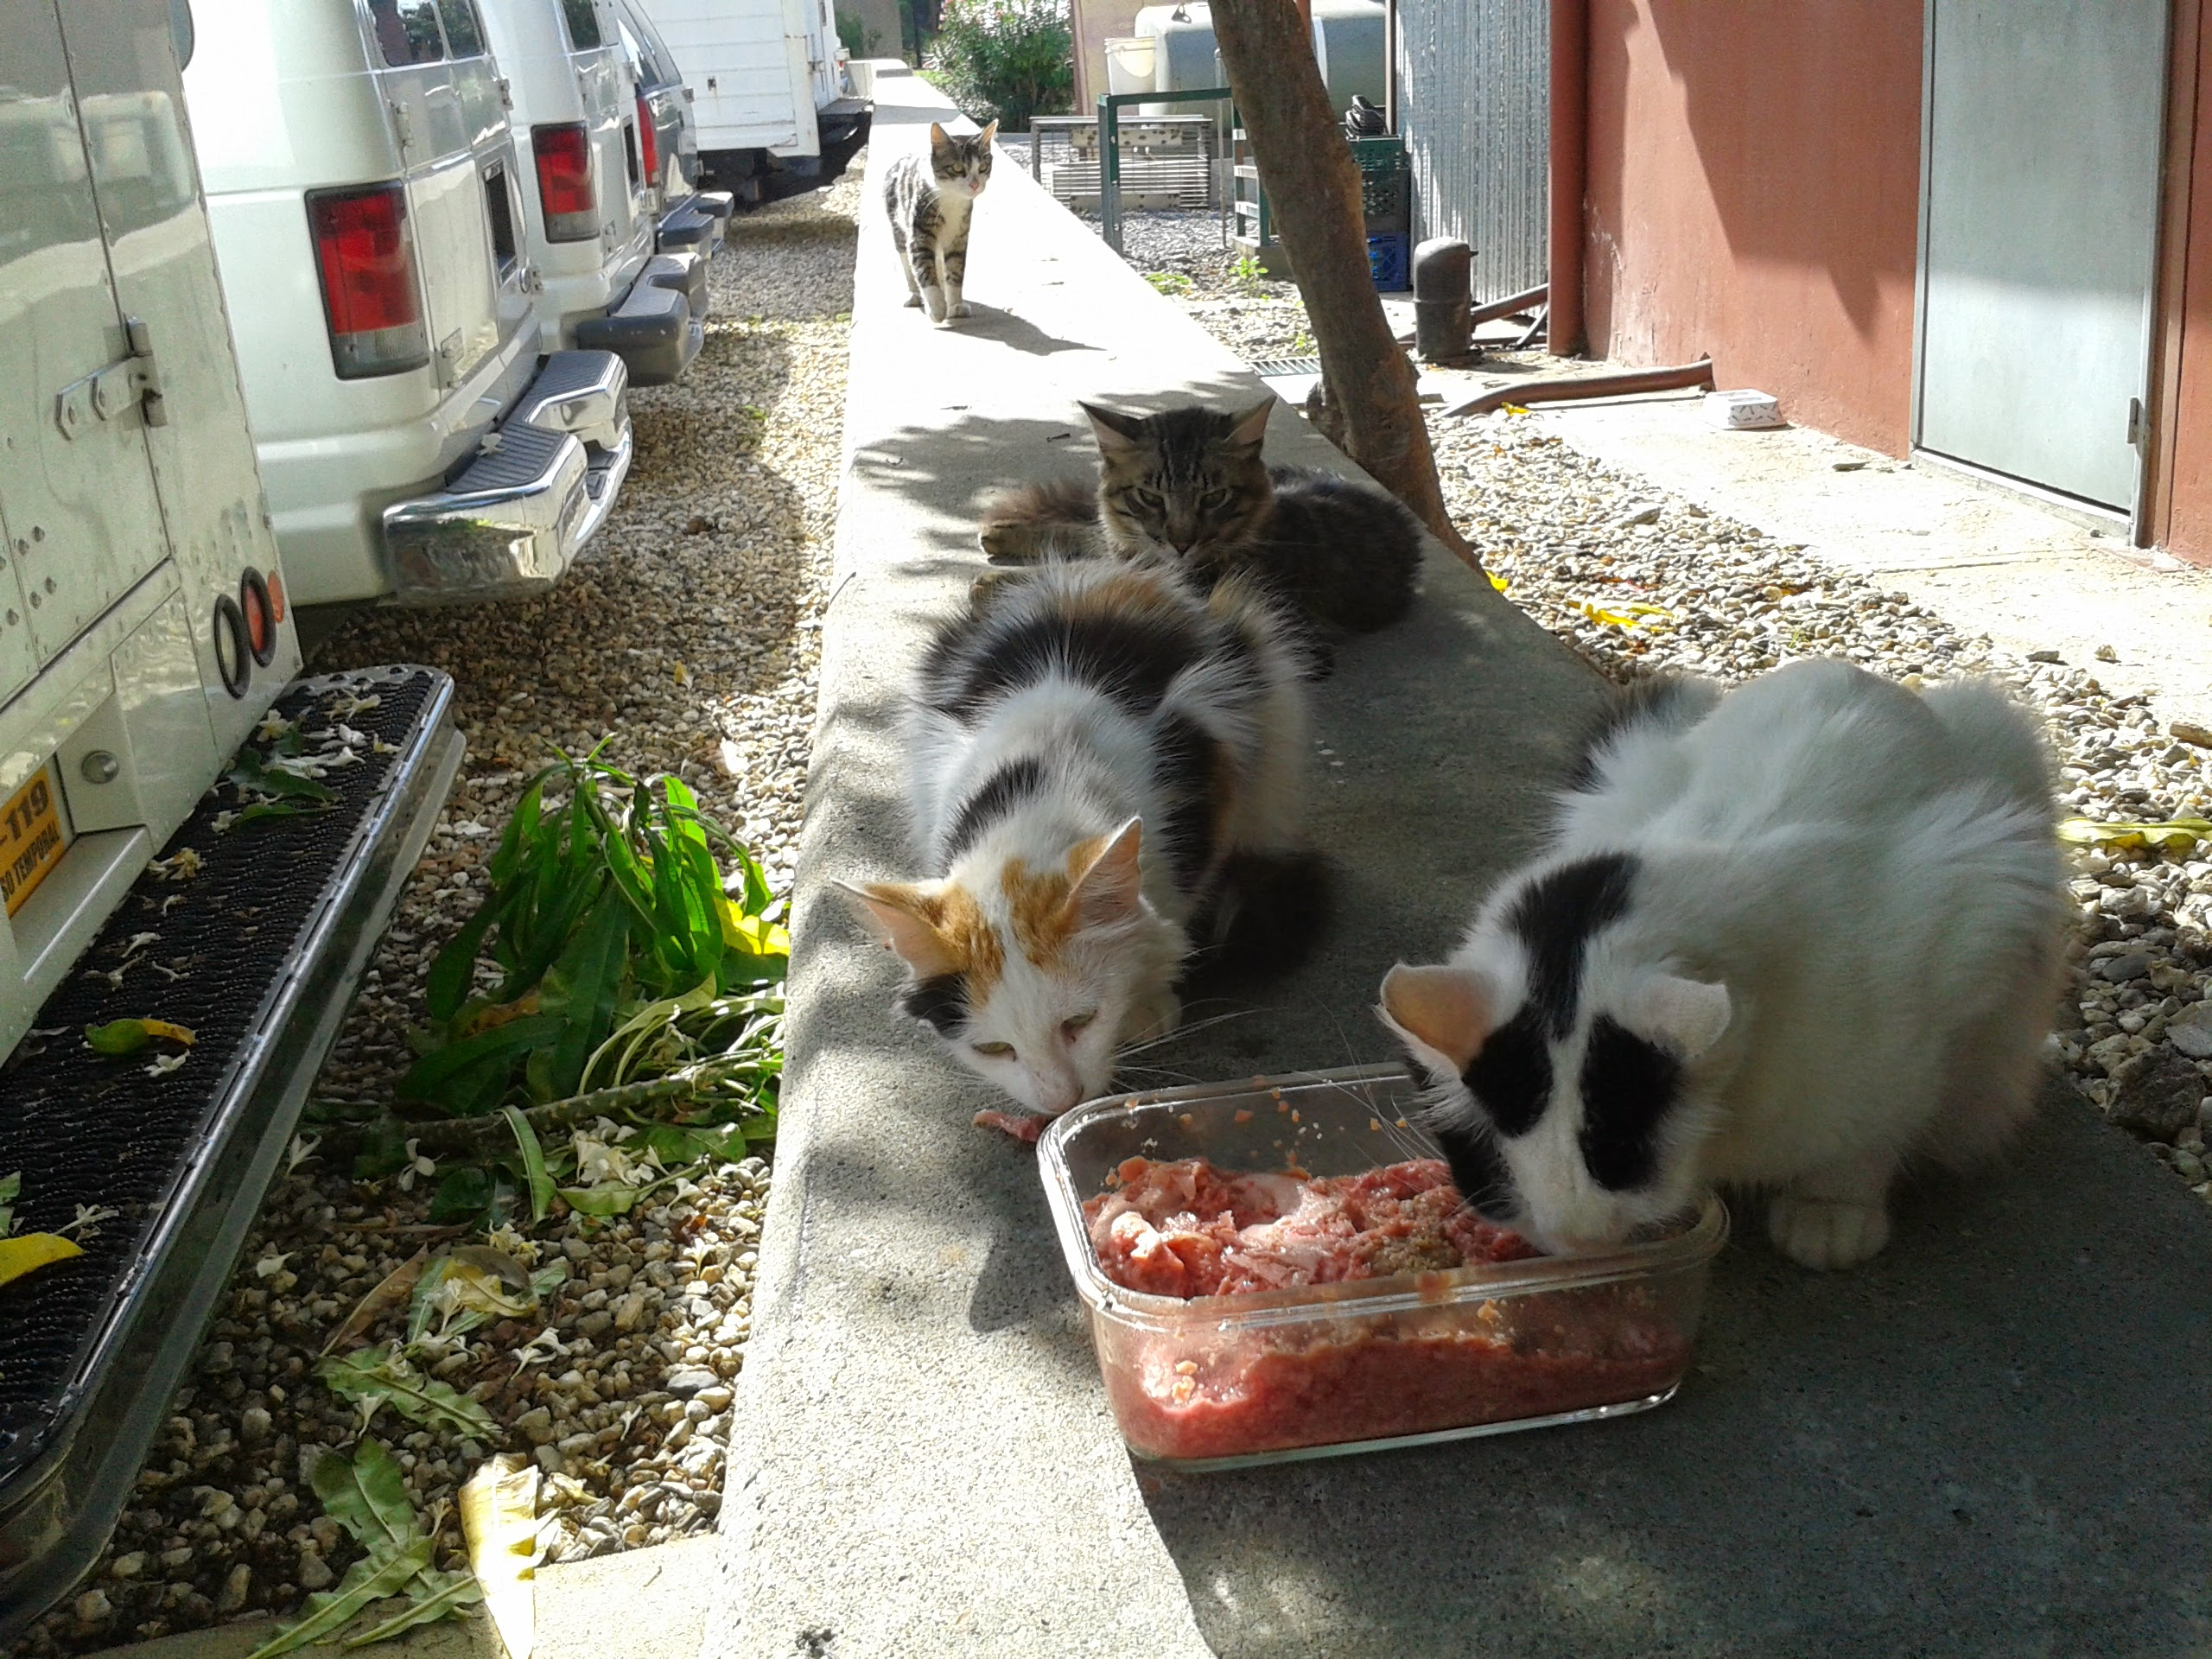 Ferals eating raw food